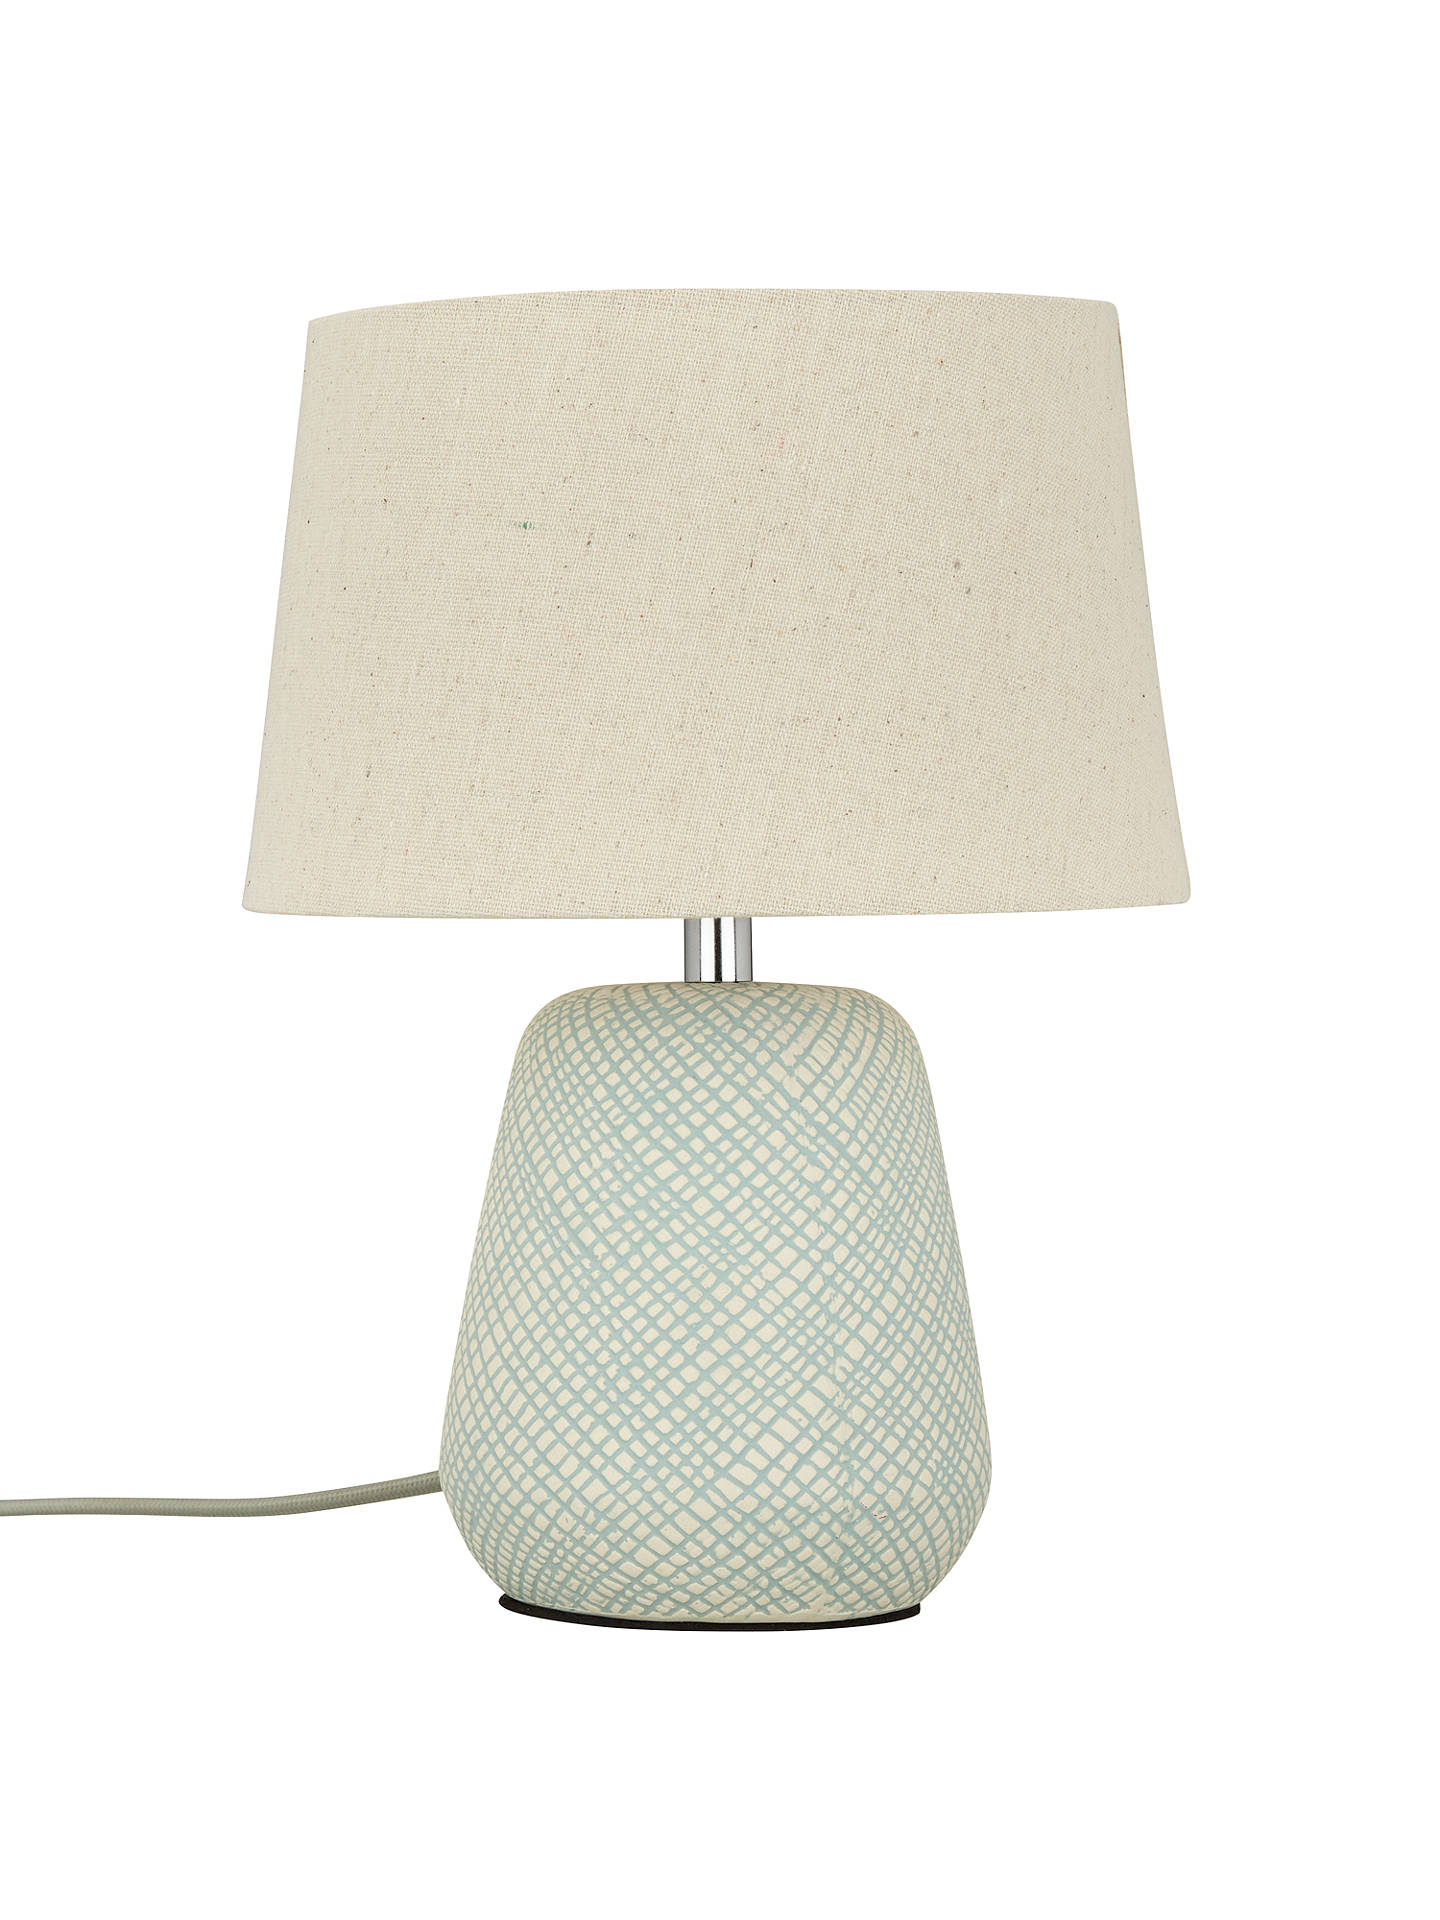 ... BuyJohn Lewis U0026 Partners Iona Small Table Lamp, Teal Online At  Johnlewis. ...